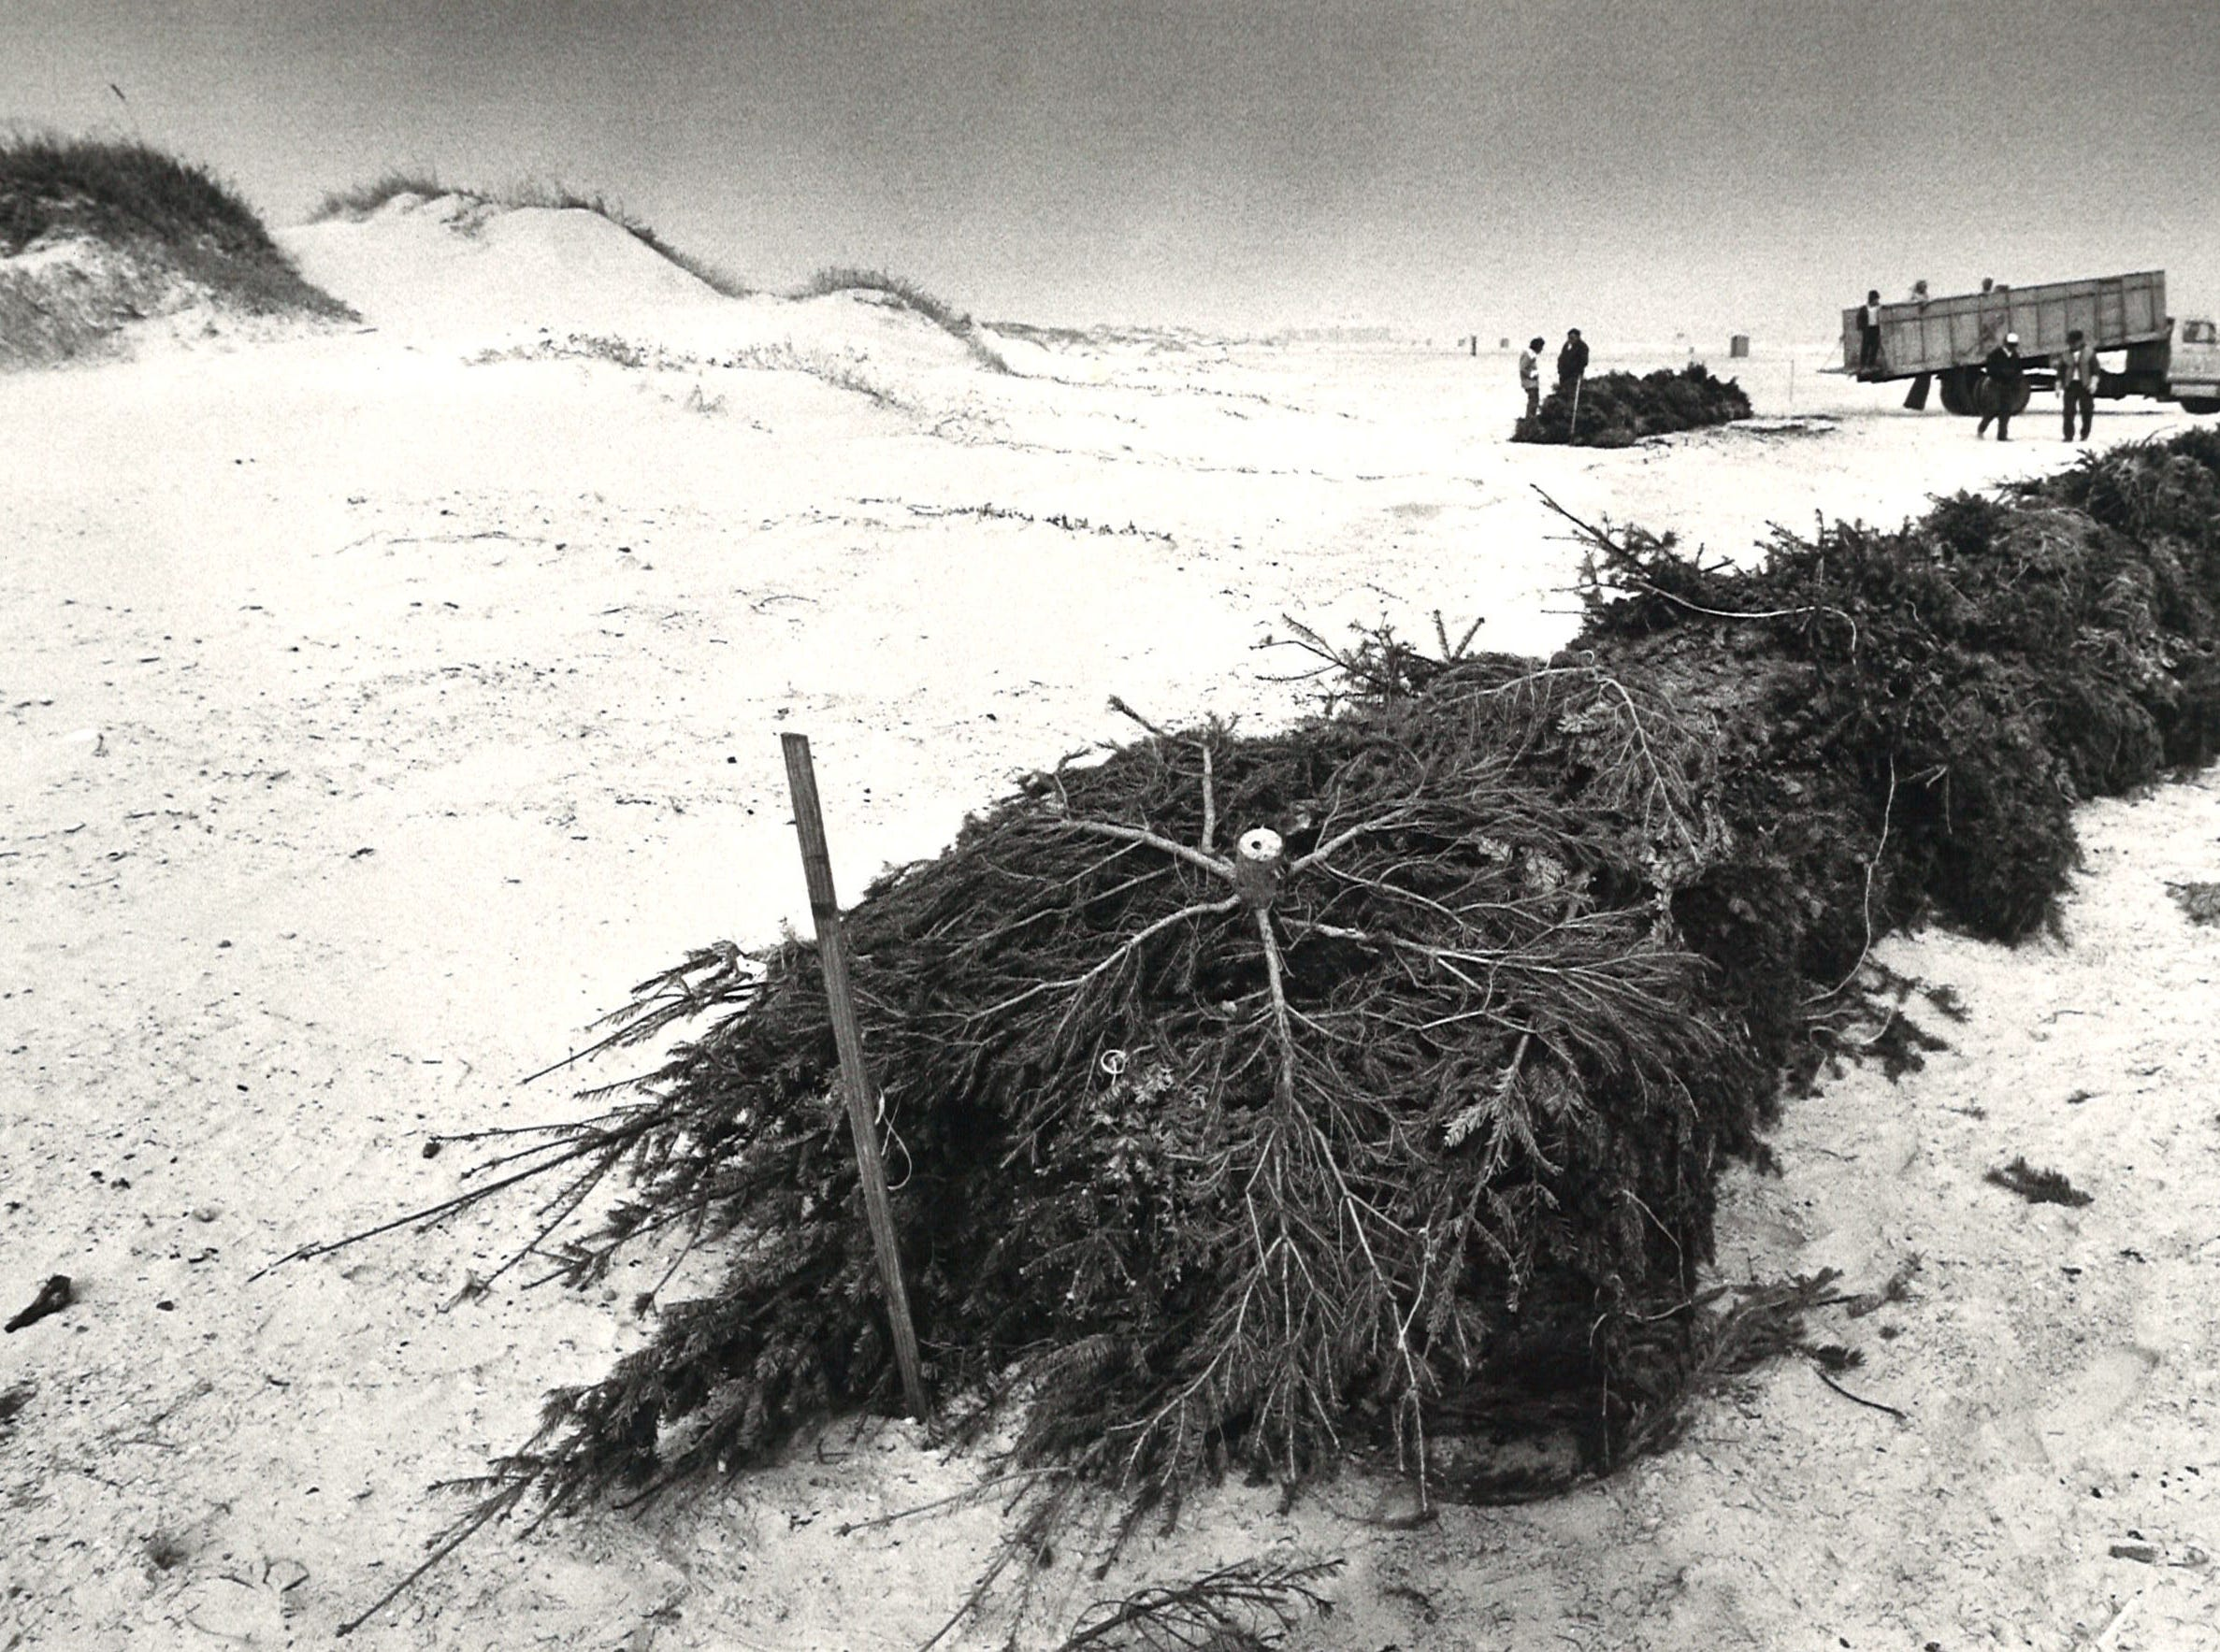 These Christmas trees form a line where new dunes can be established on Padre Island. Workers placed the trees as part of a Nueces County dune restoration effort on Jan. 3, 1983.